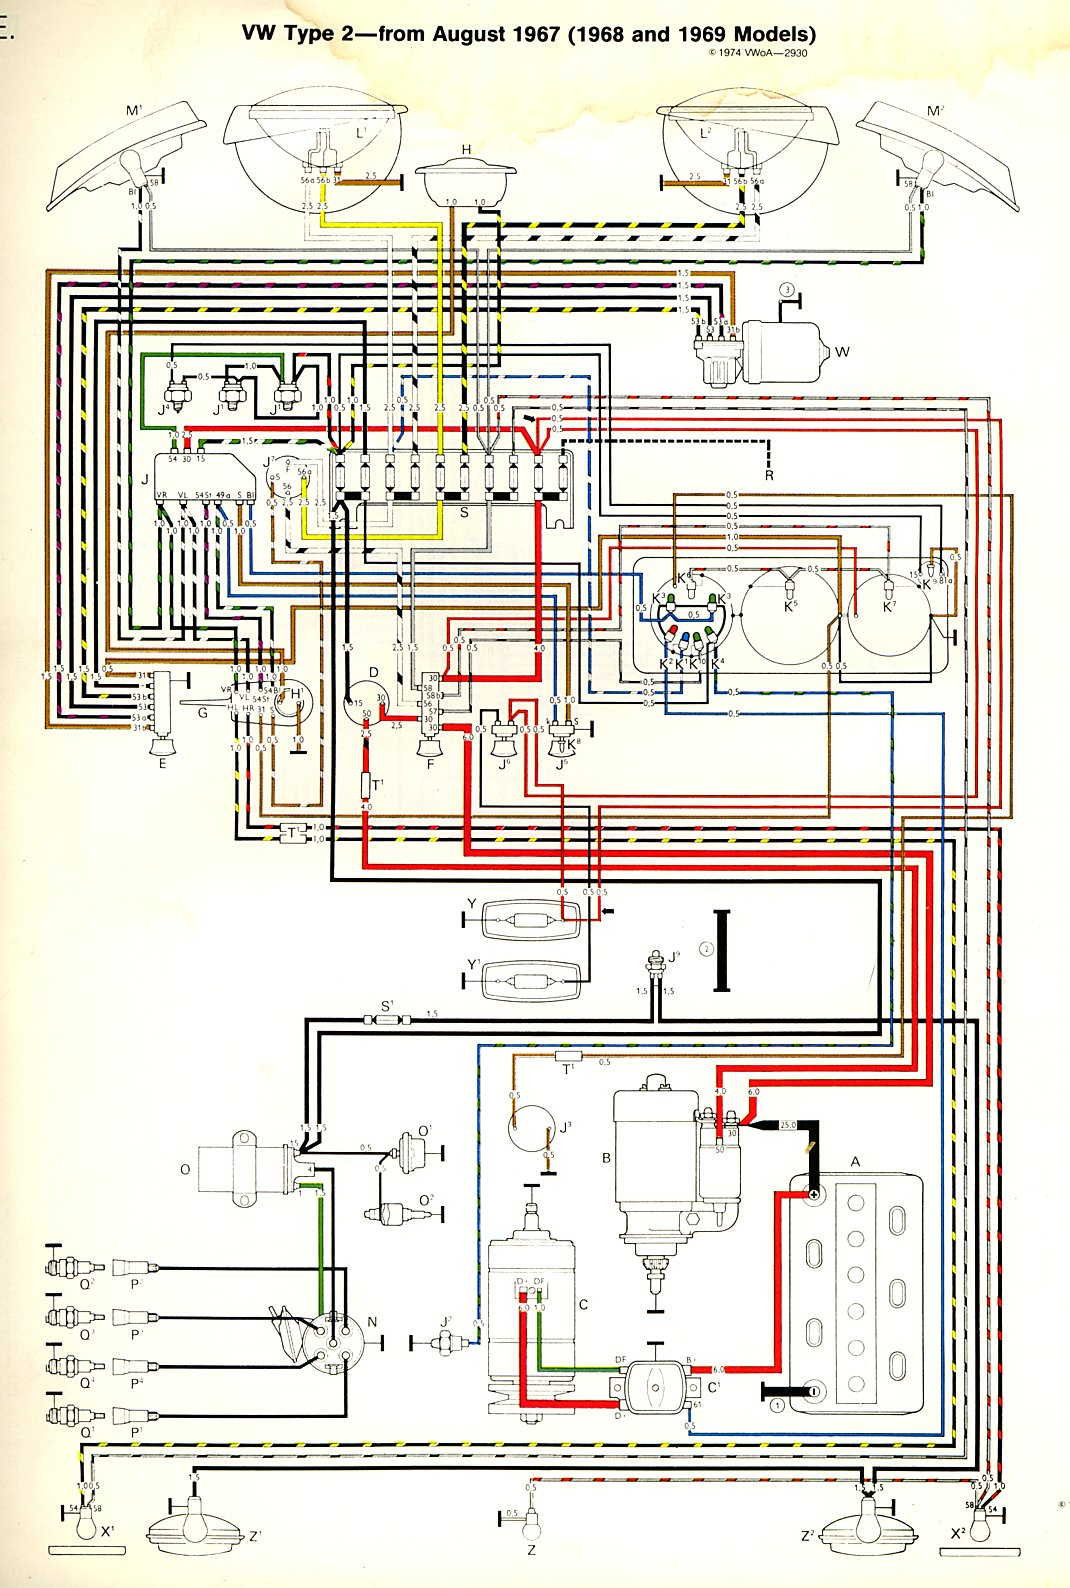 baybus_6869a 1968 69 bus wiring diagram thegoldenbug com find wiring diagram for 87 ford f 150 at gsmportal.co